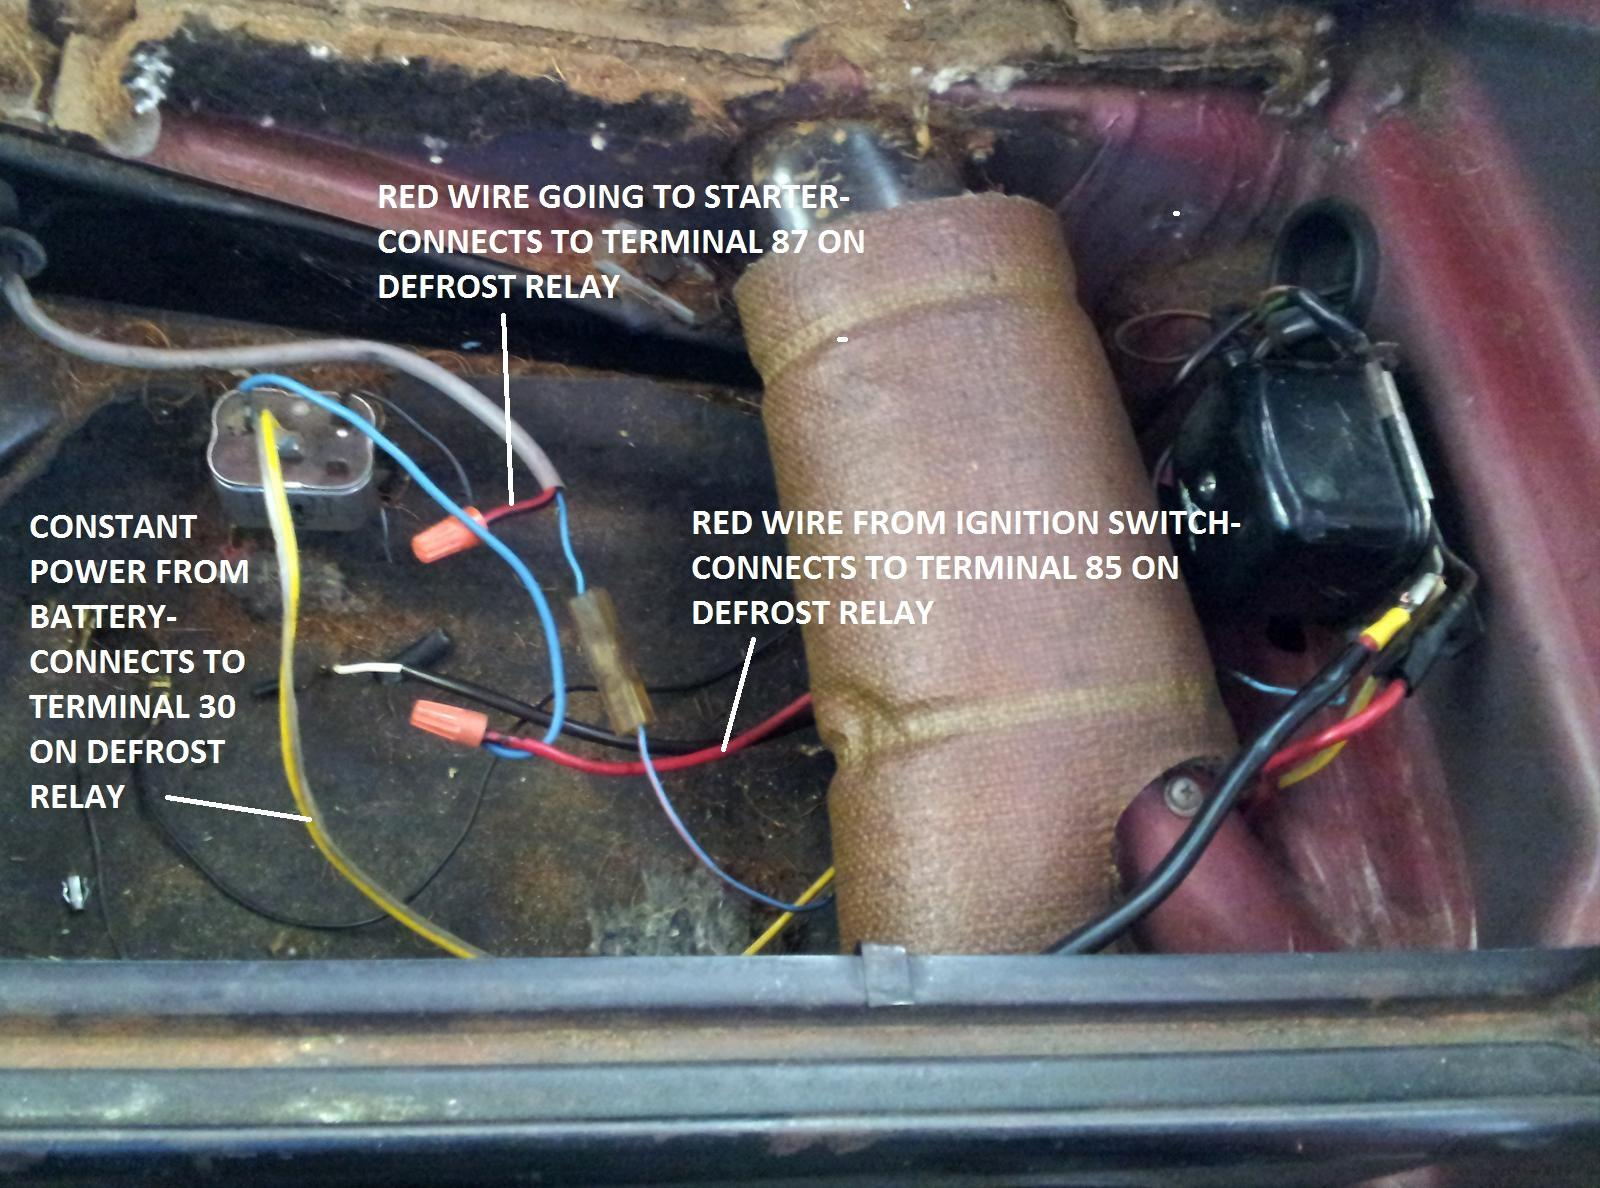 using rear defrost relay as hard start relay